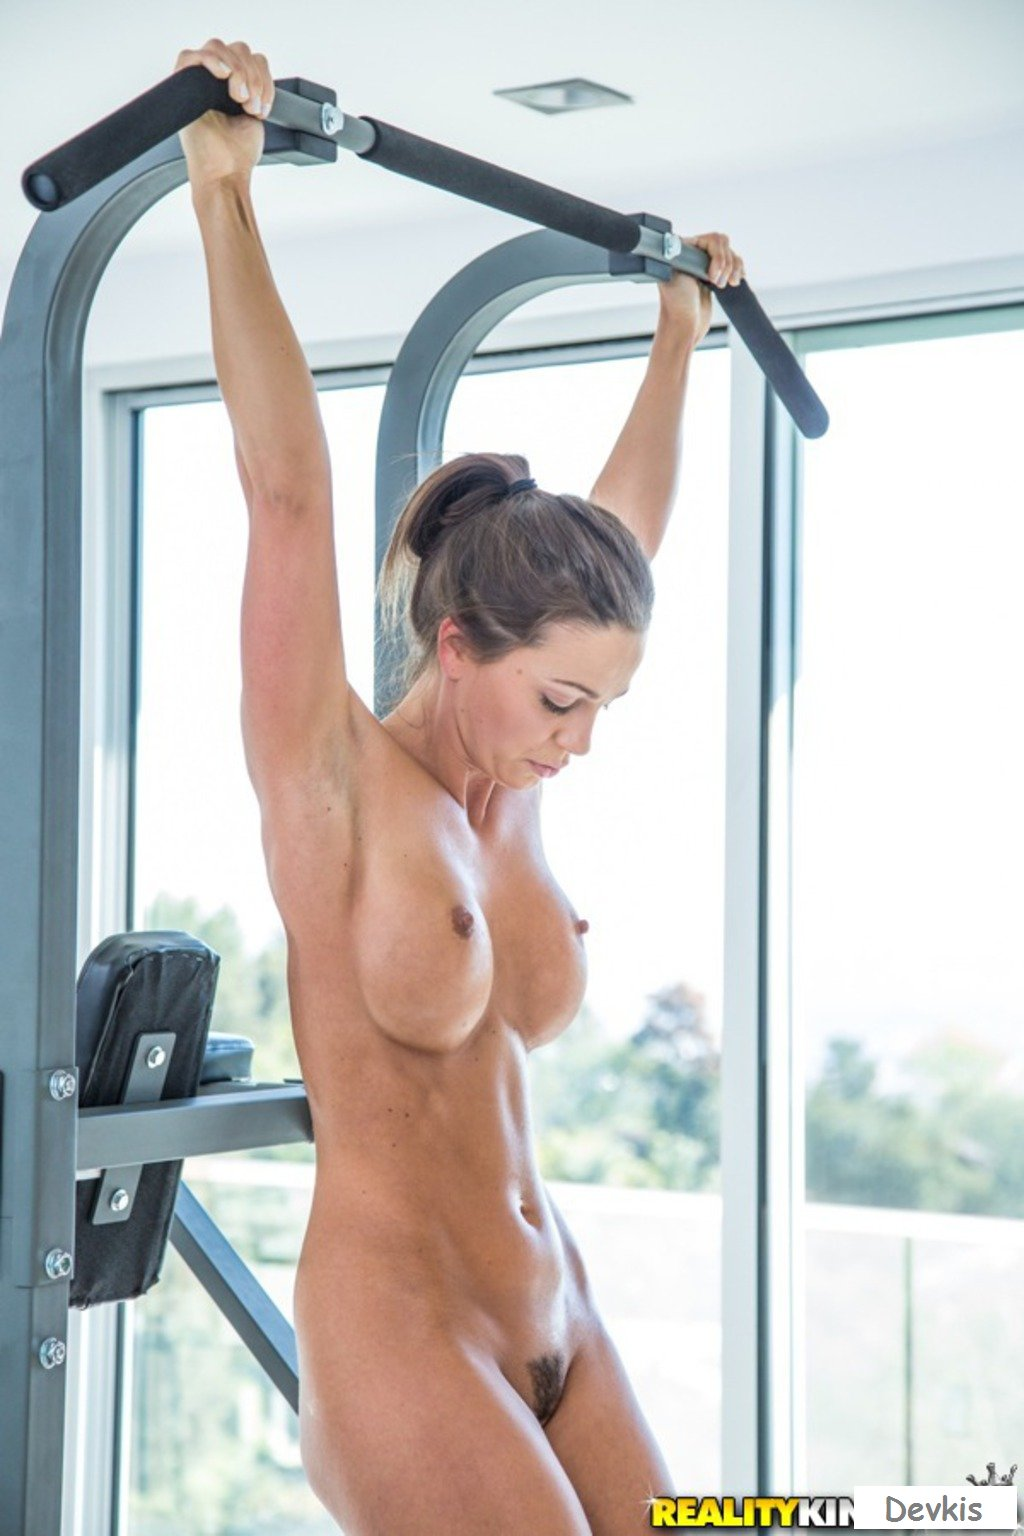 Sexy Babe Nude Workout